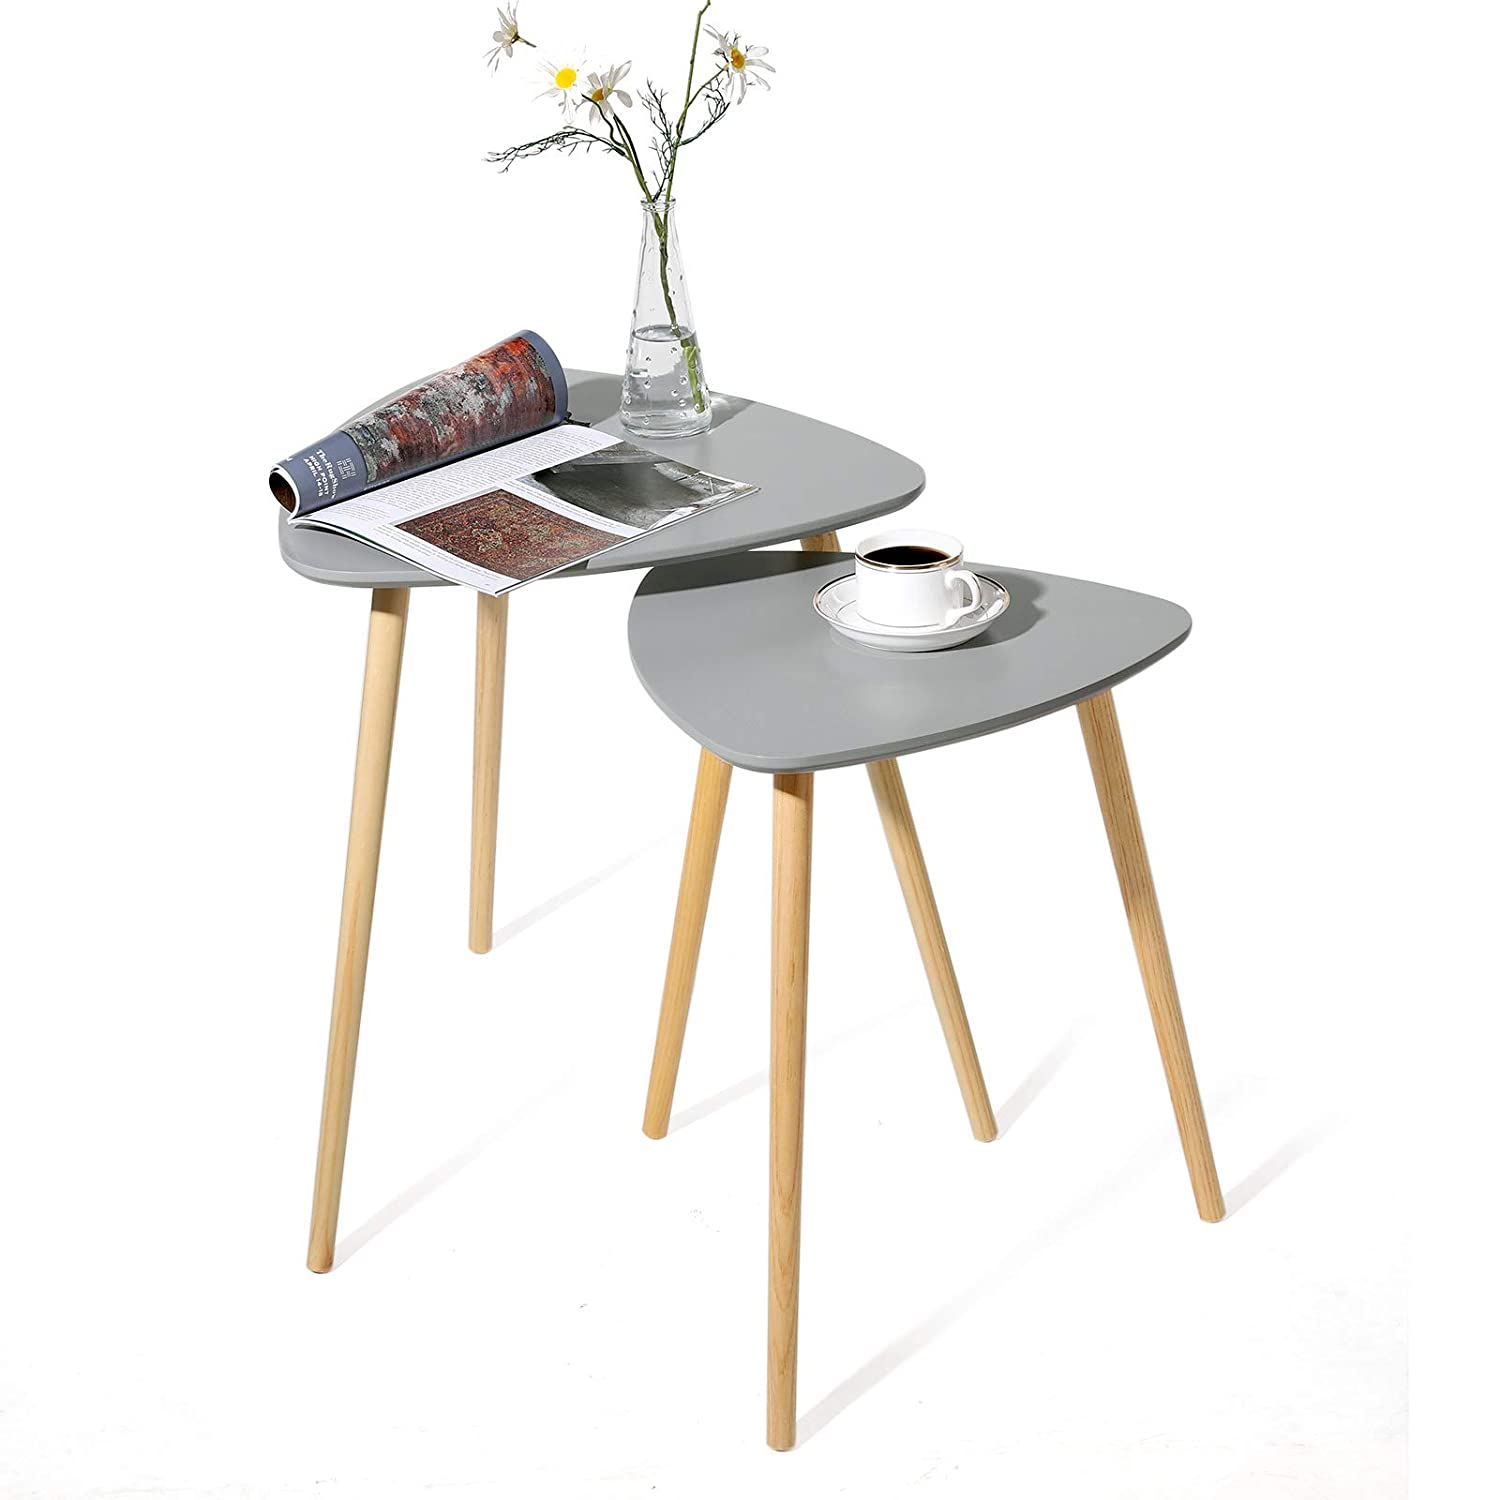 LET17GY Coffee Table with Solid Pine Legs SONGMICS Scandinavian Nesting Side Table Set of 2 Triangle End Table Nature Grey